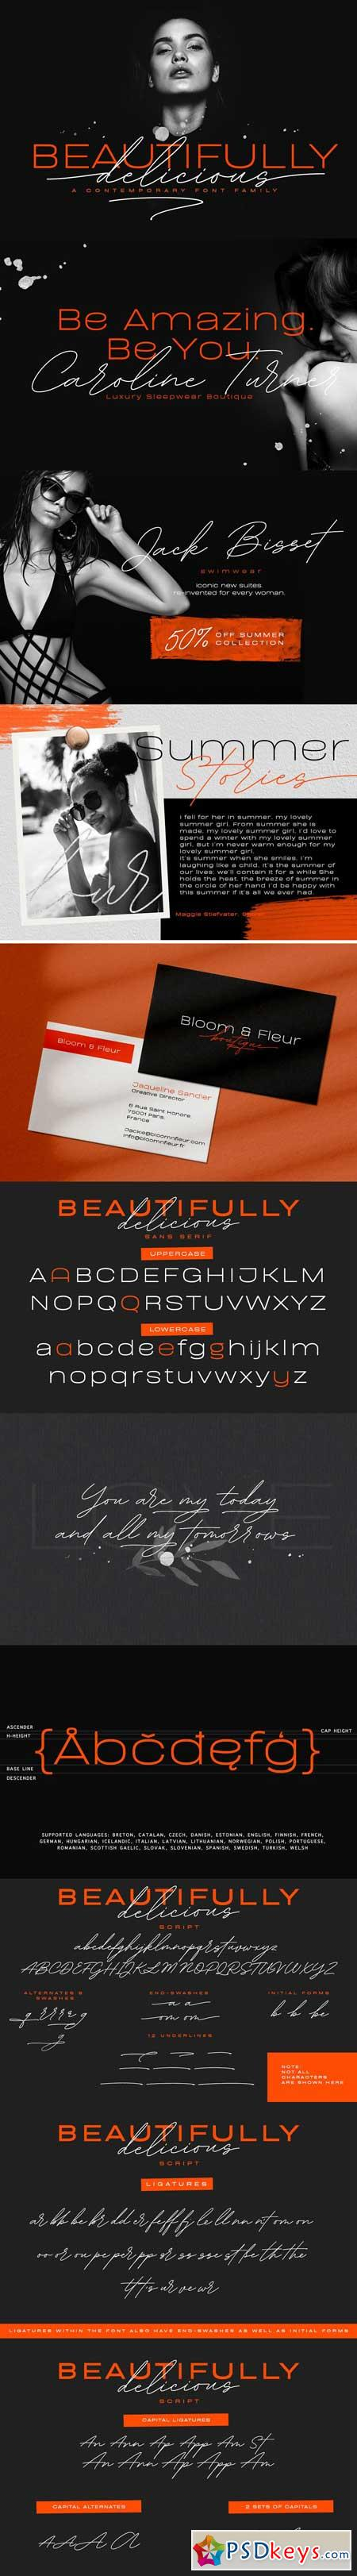 Beautifully Delicious Font Family 3369010